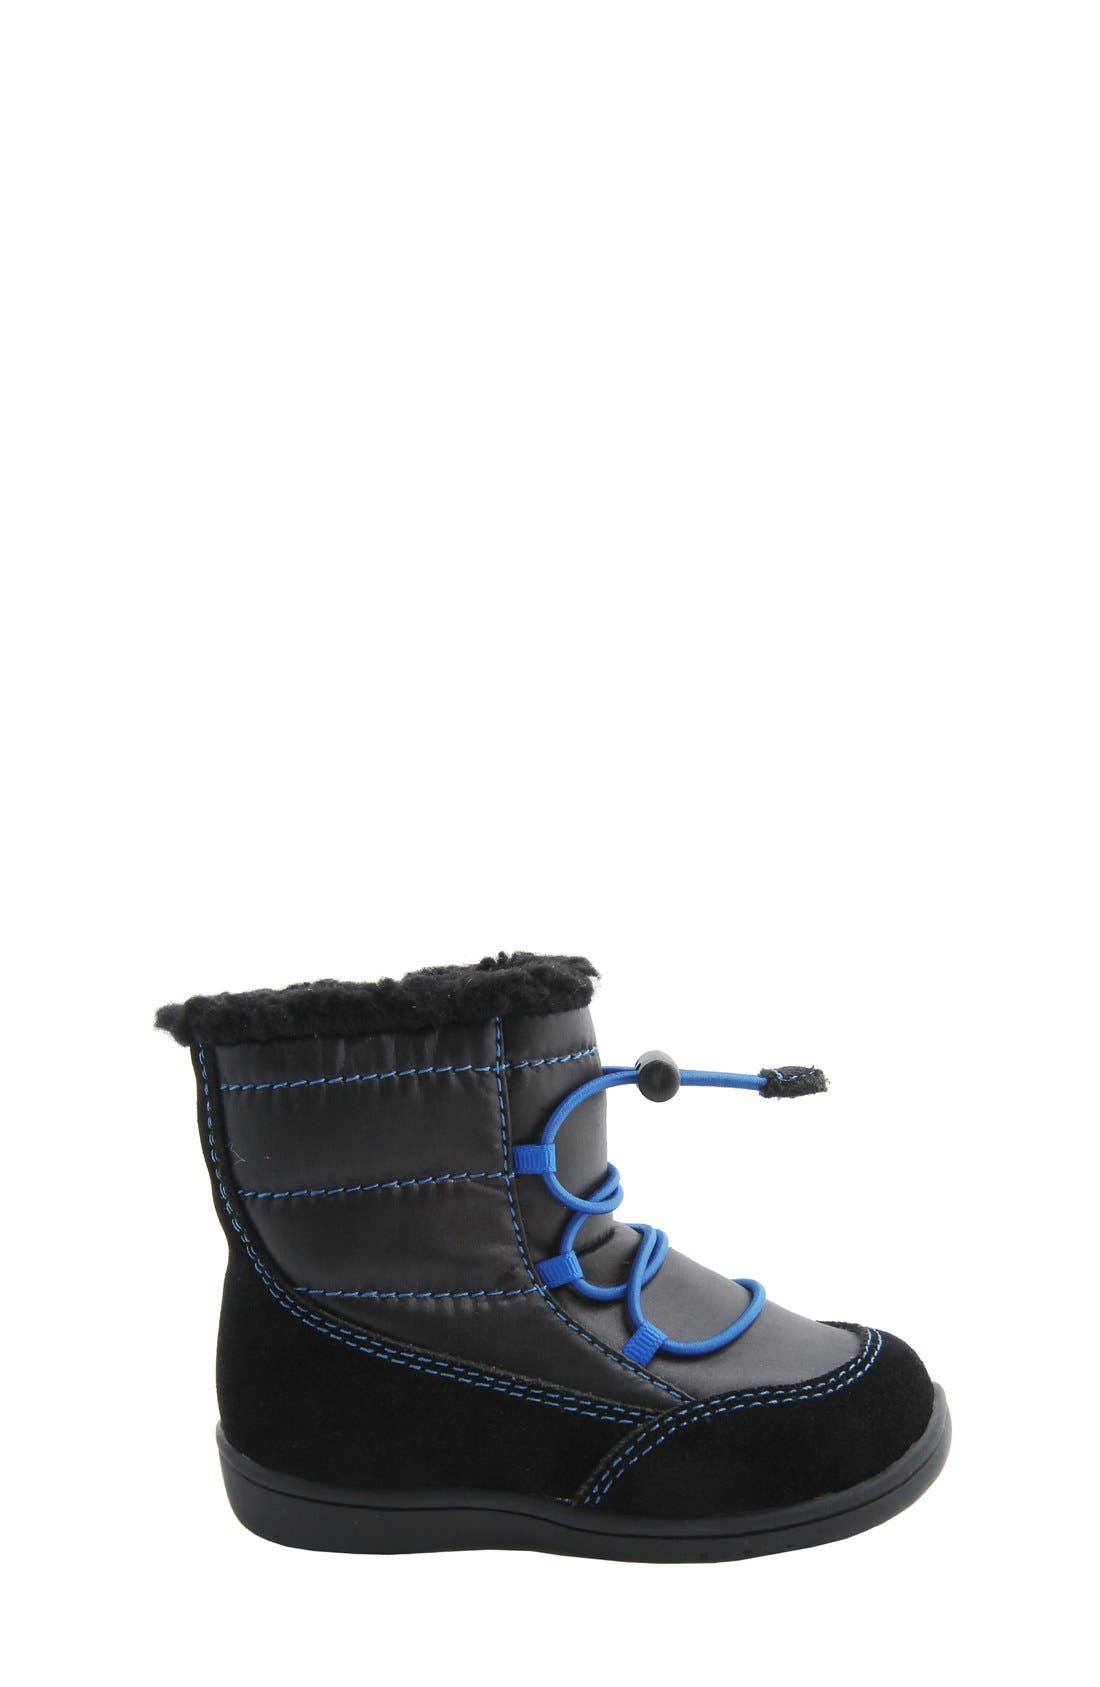 MOBILITY, Nina 'Yolie' Lace-Up Boot, Alternate thumbnail 5, color, BLACK